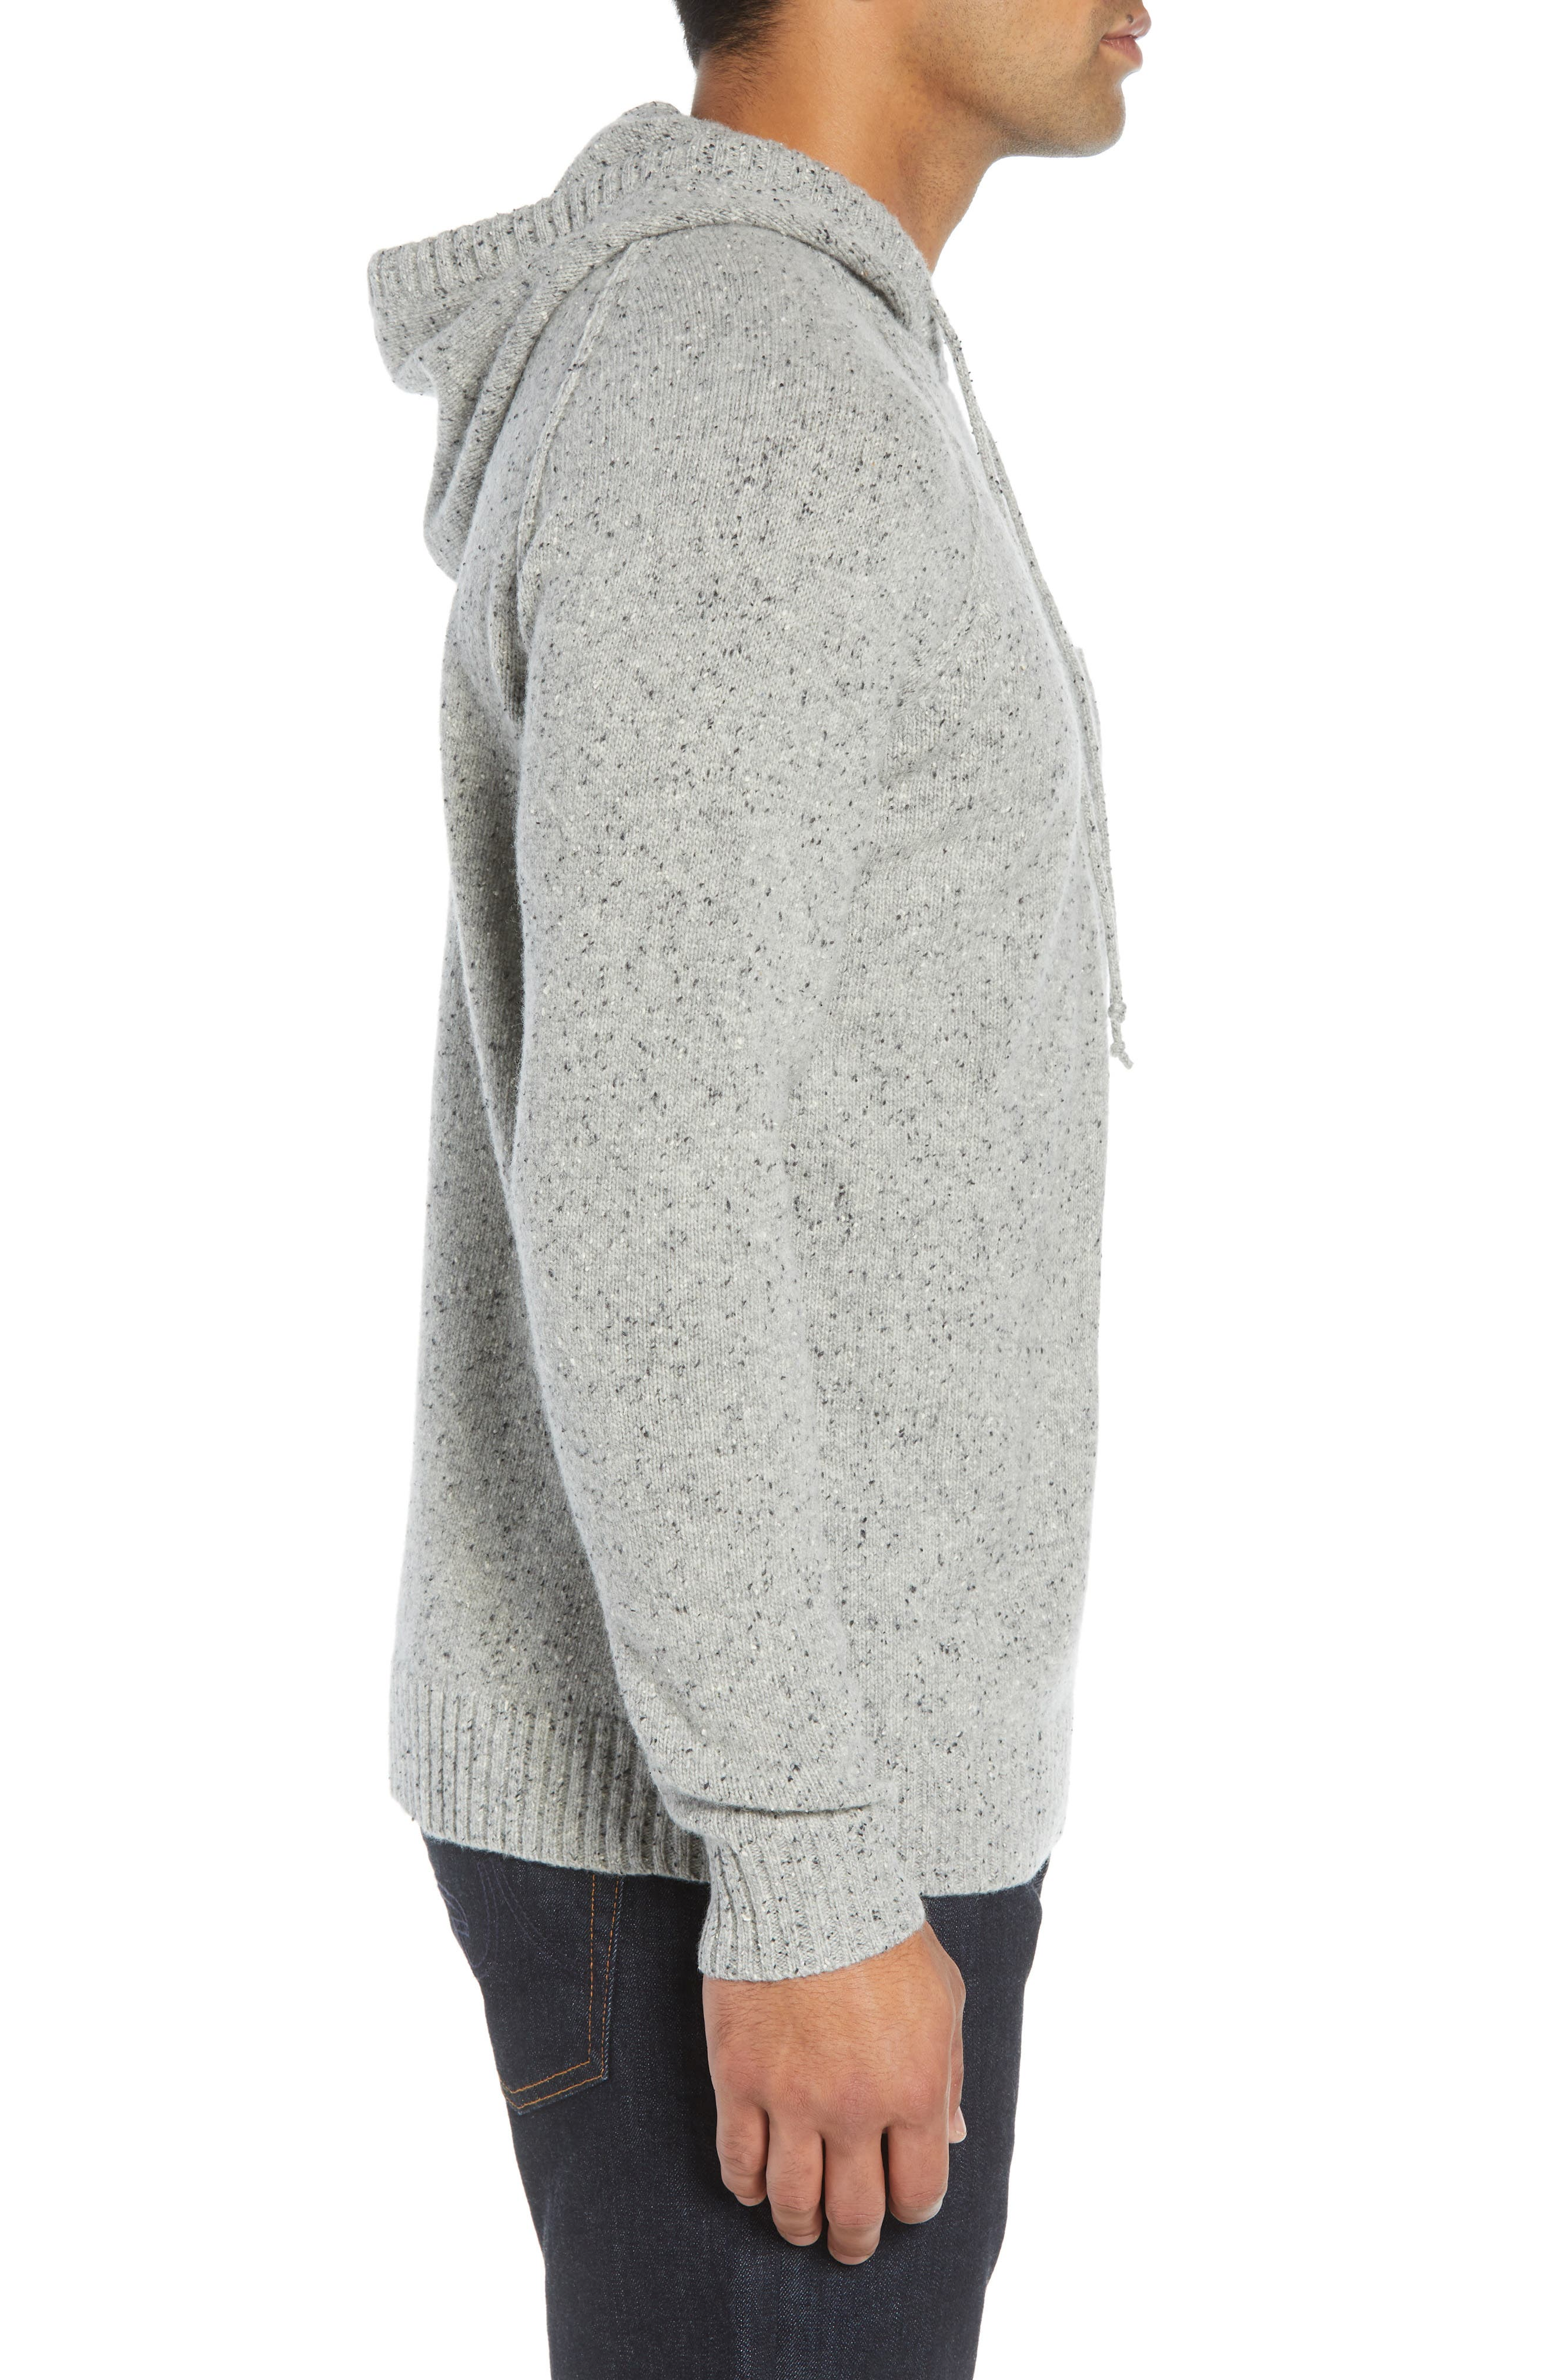 Rule 18 Donegal Regular Fit Hooded Sweater,                             Alternate thumbnail 3, color,                             GREY